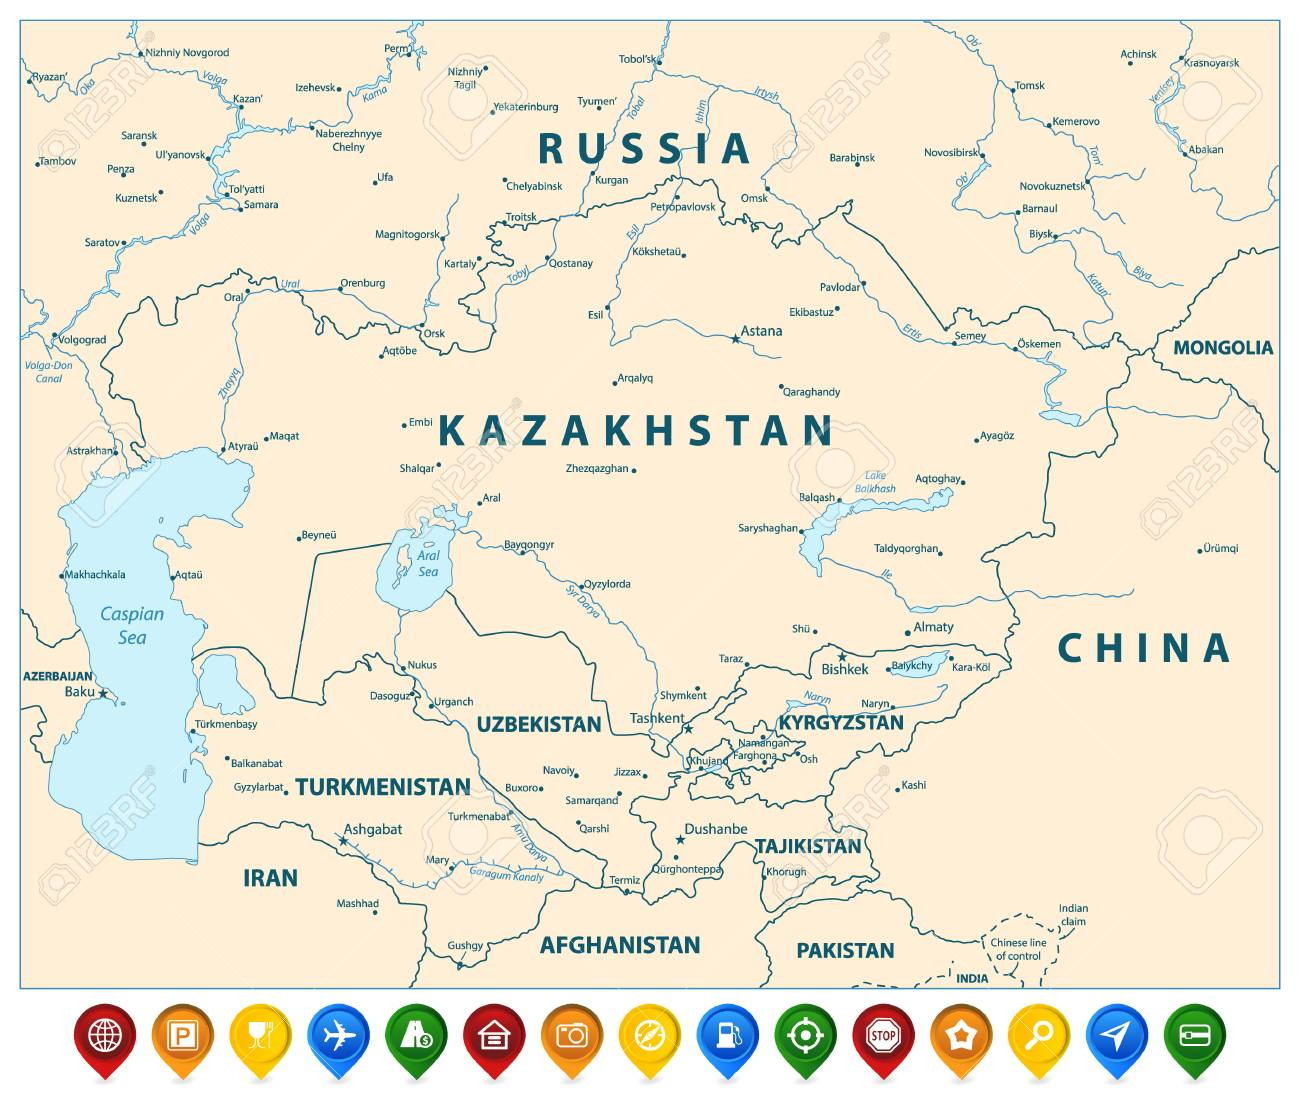 Central Asia Political Map and Colorful Map Pointers. Vector..